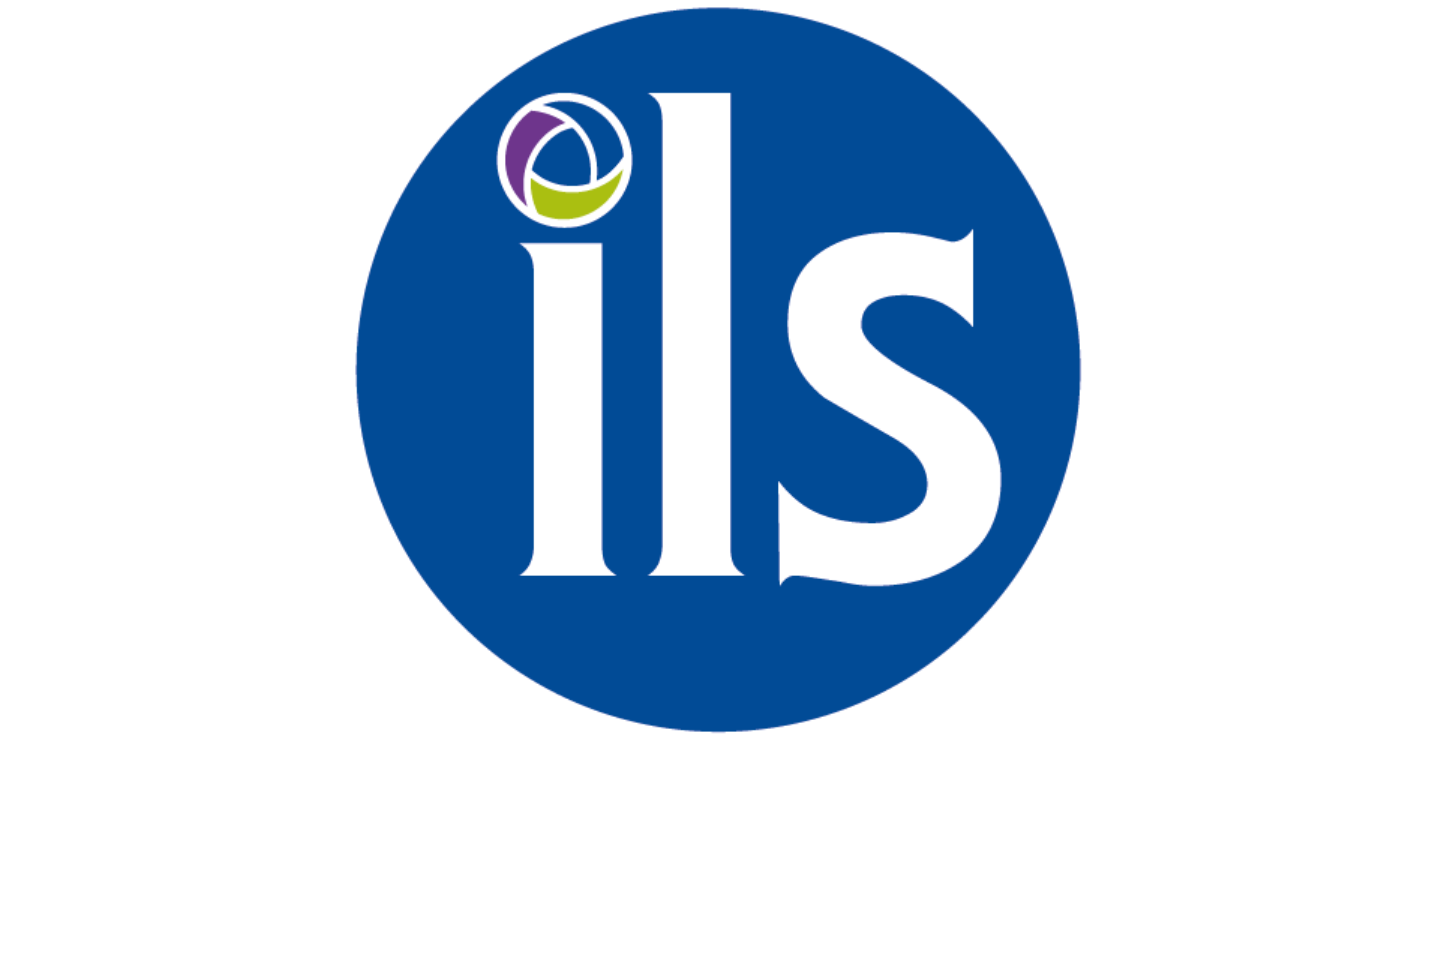 ILS Case Management Logo 2020